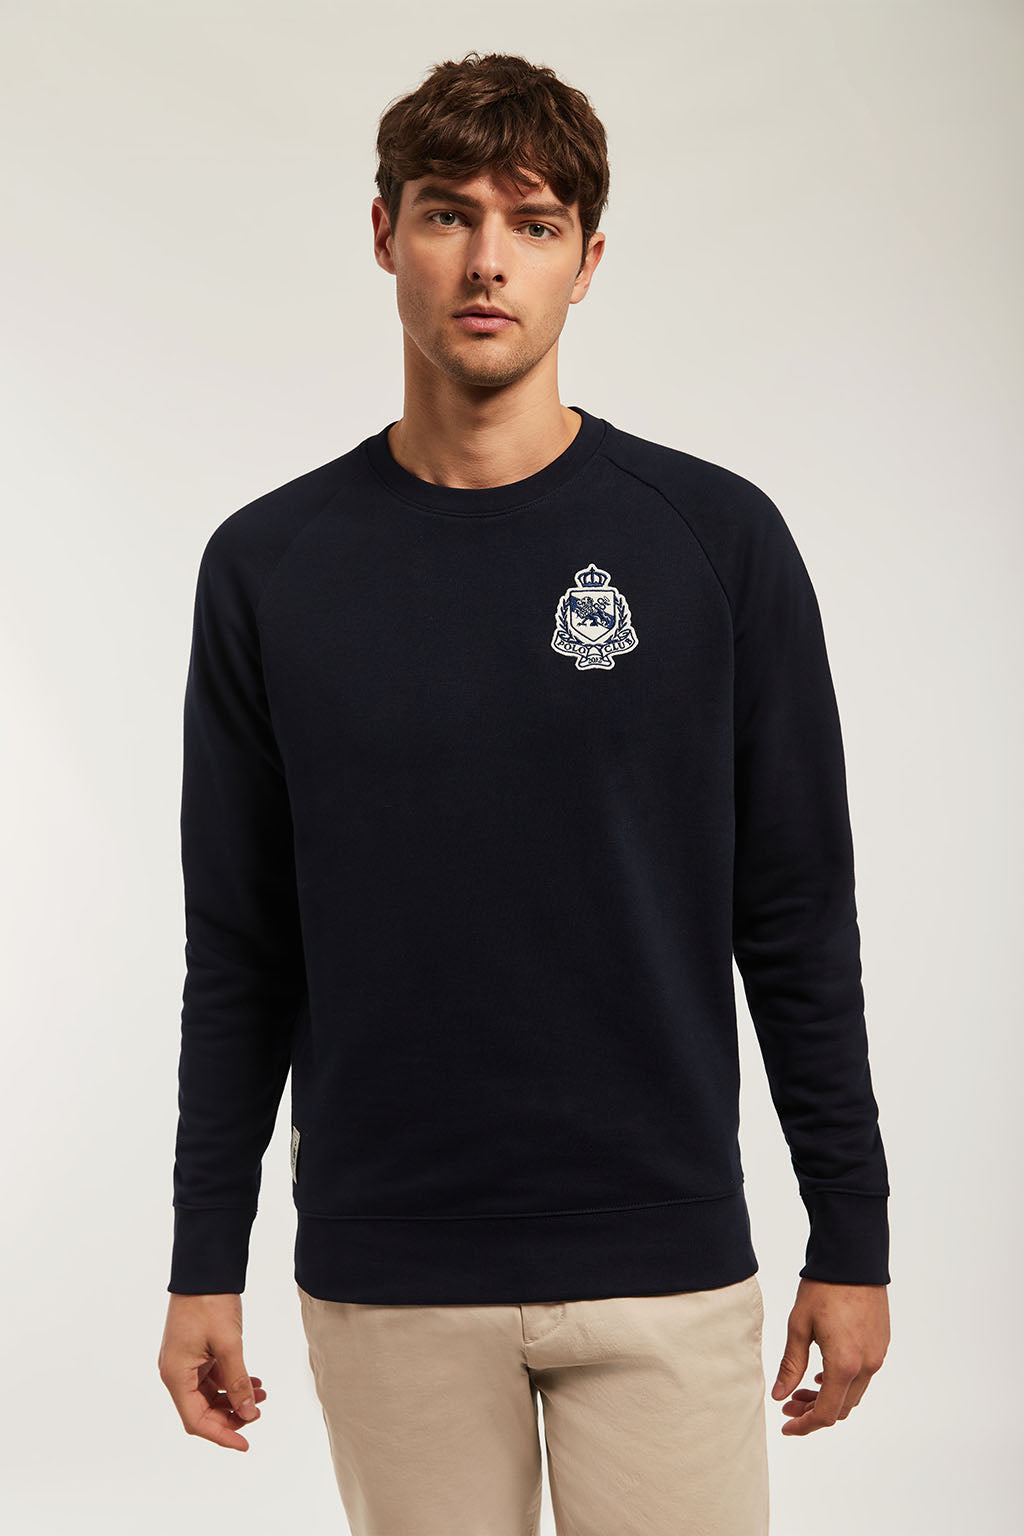 Navy blue organic sweatshirt with contrast embroidered patch